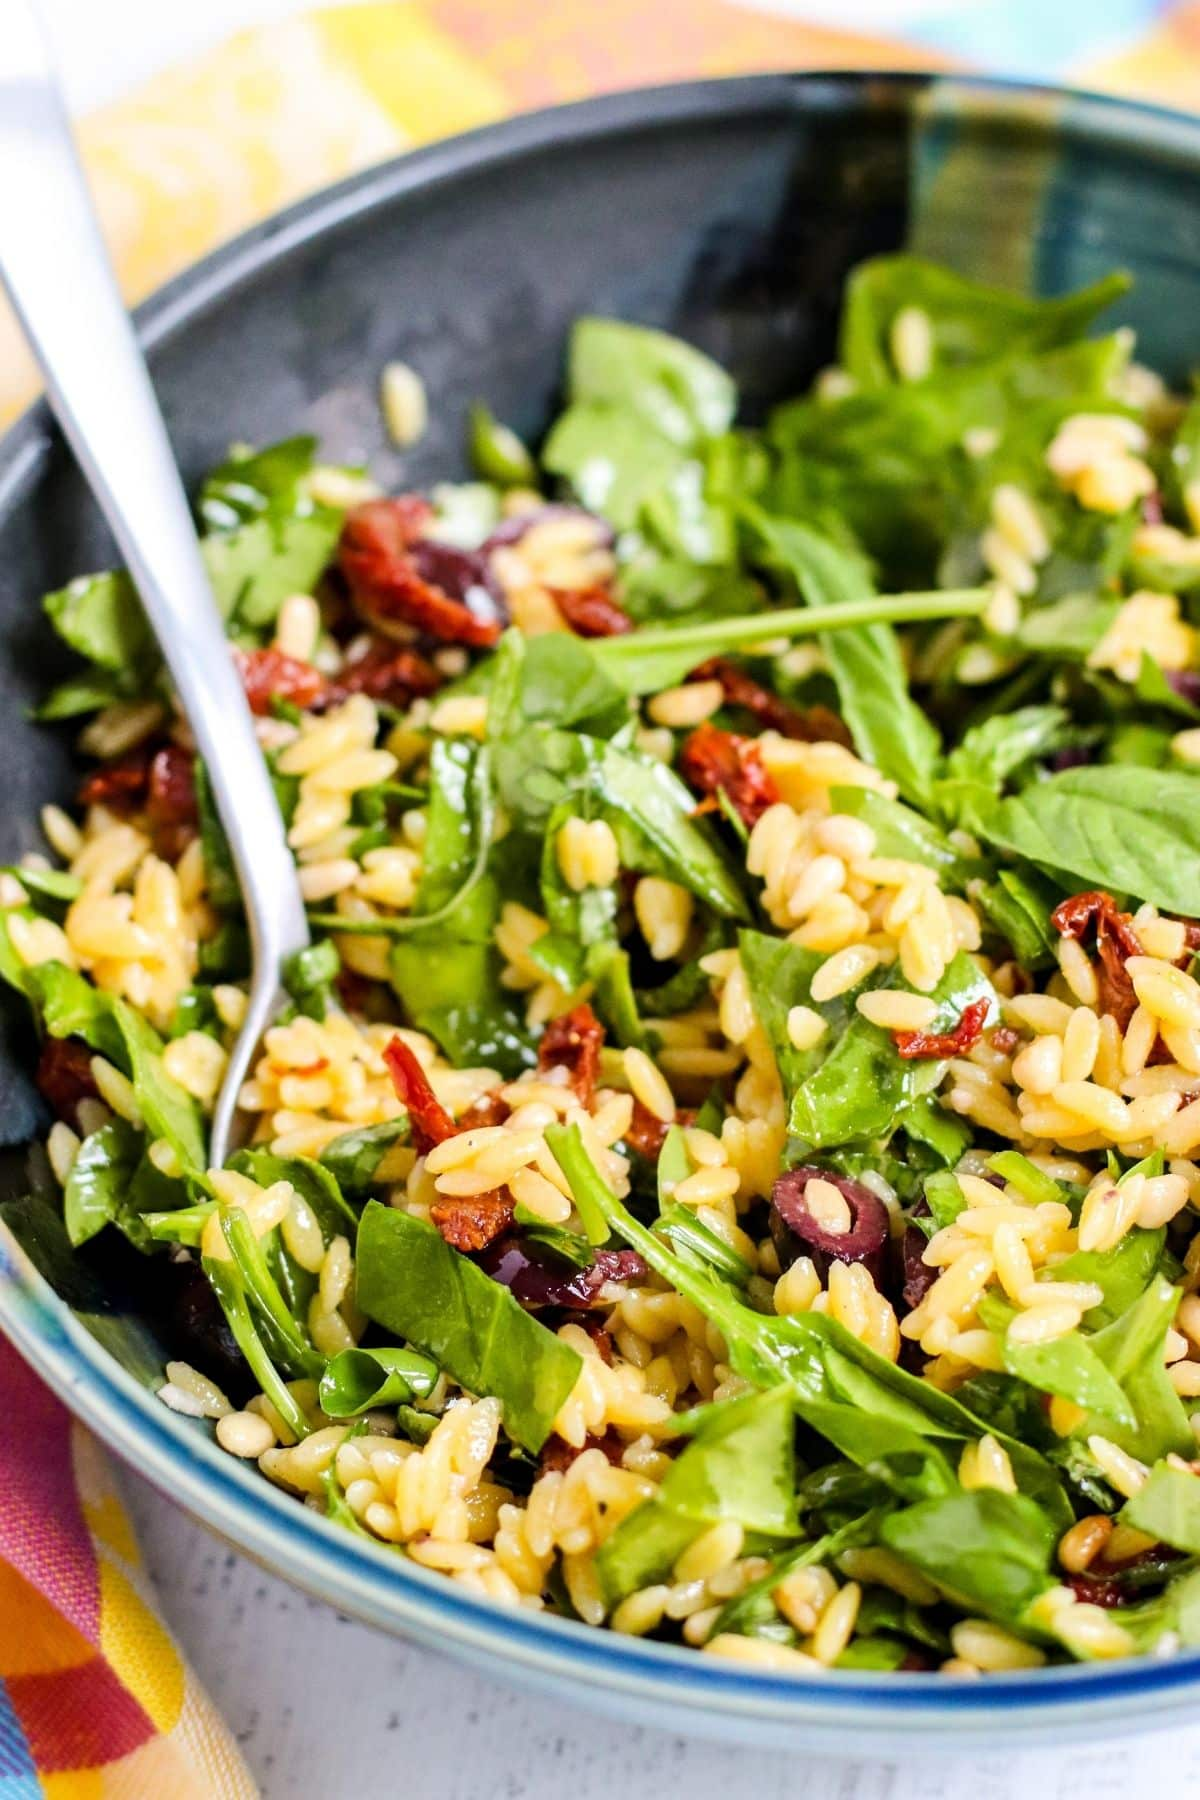 Close up detail of salad with a serving spoon in it